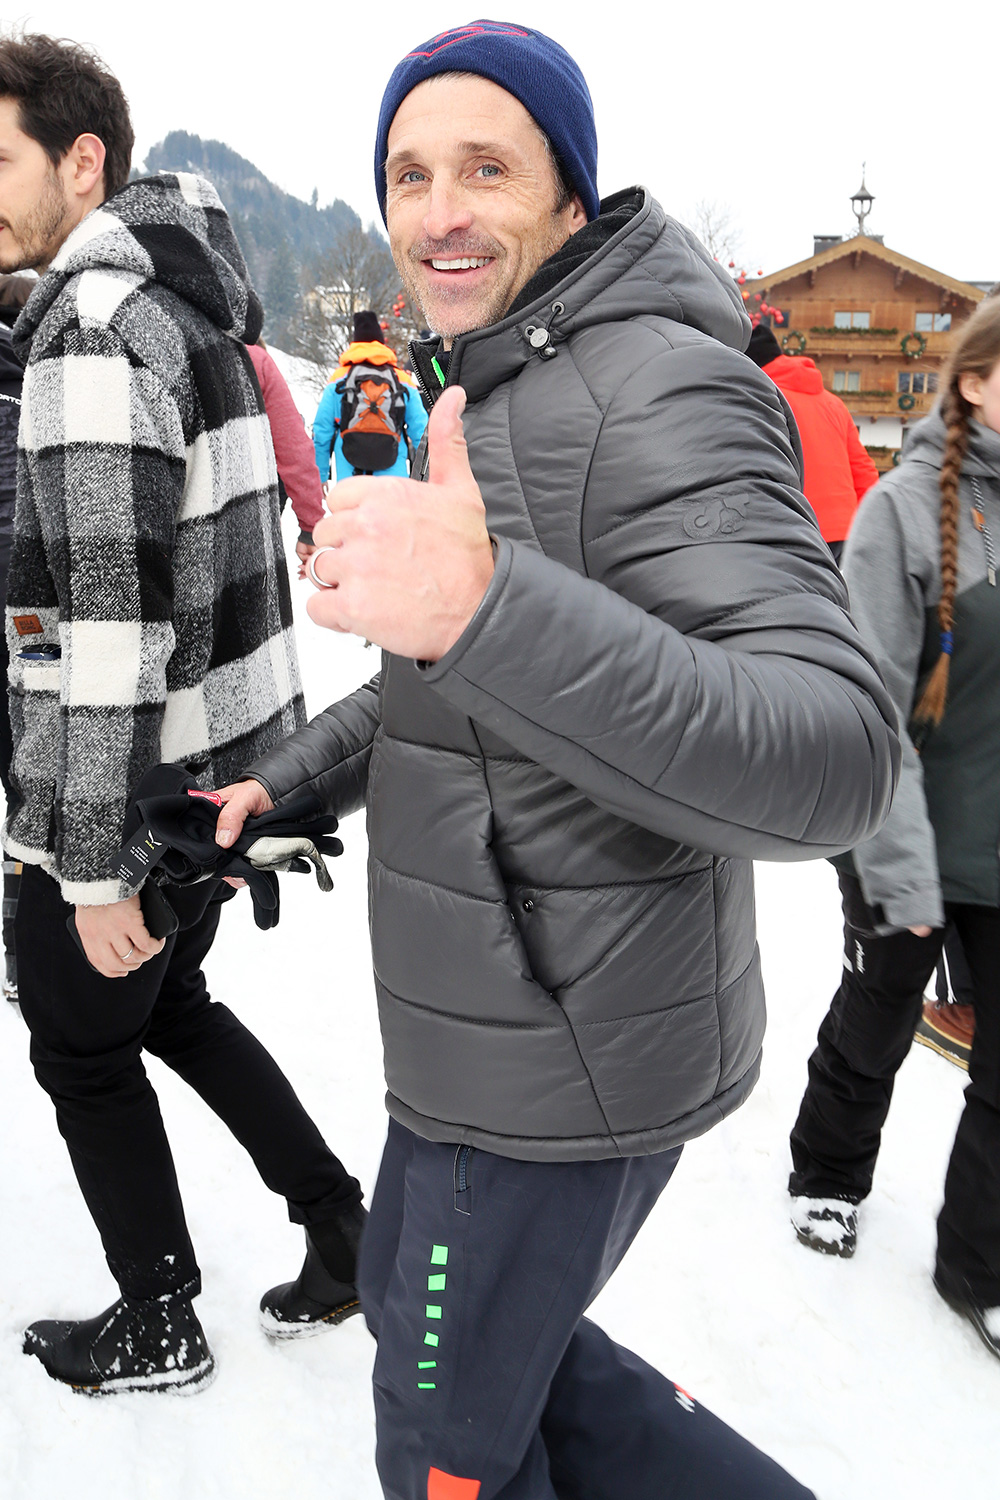 Patrick Dempsey attends the world's most difficult Ski Race at the Hahnenkamm in Kitzbuehel, Austria